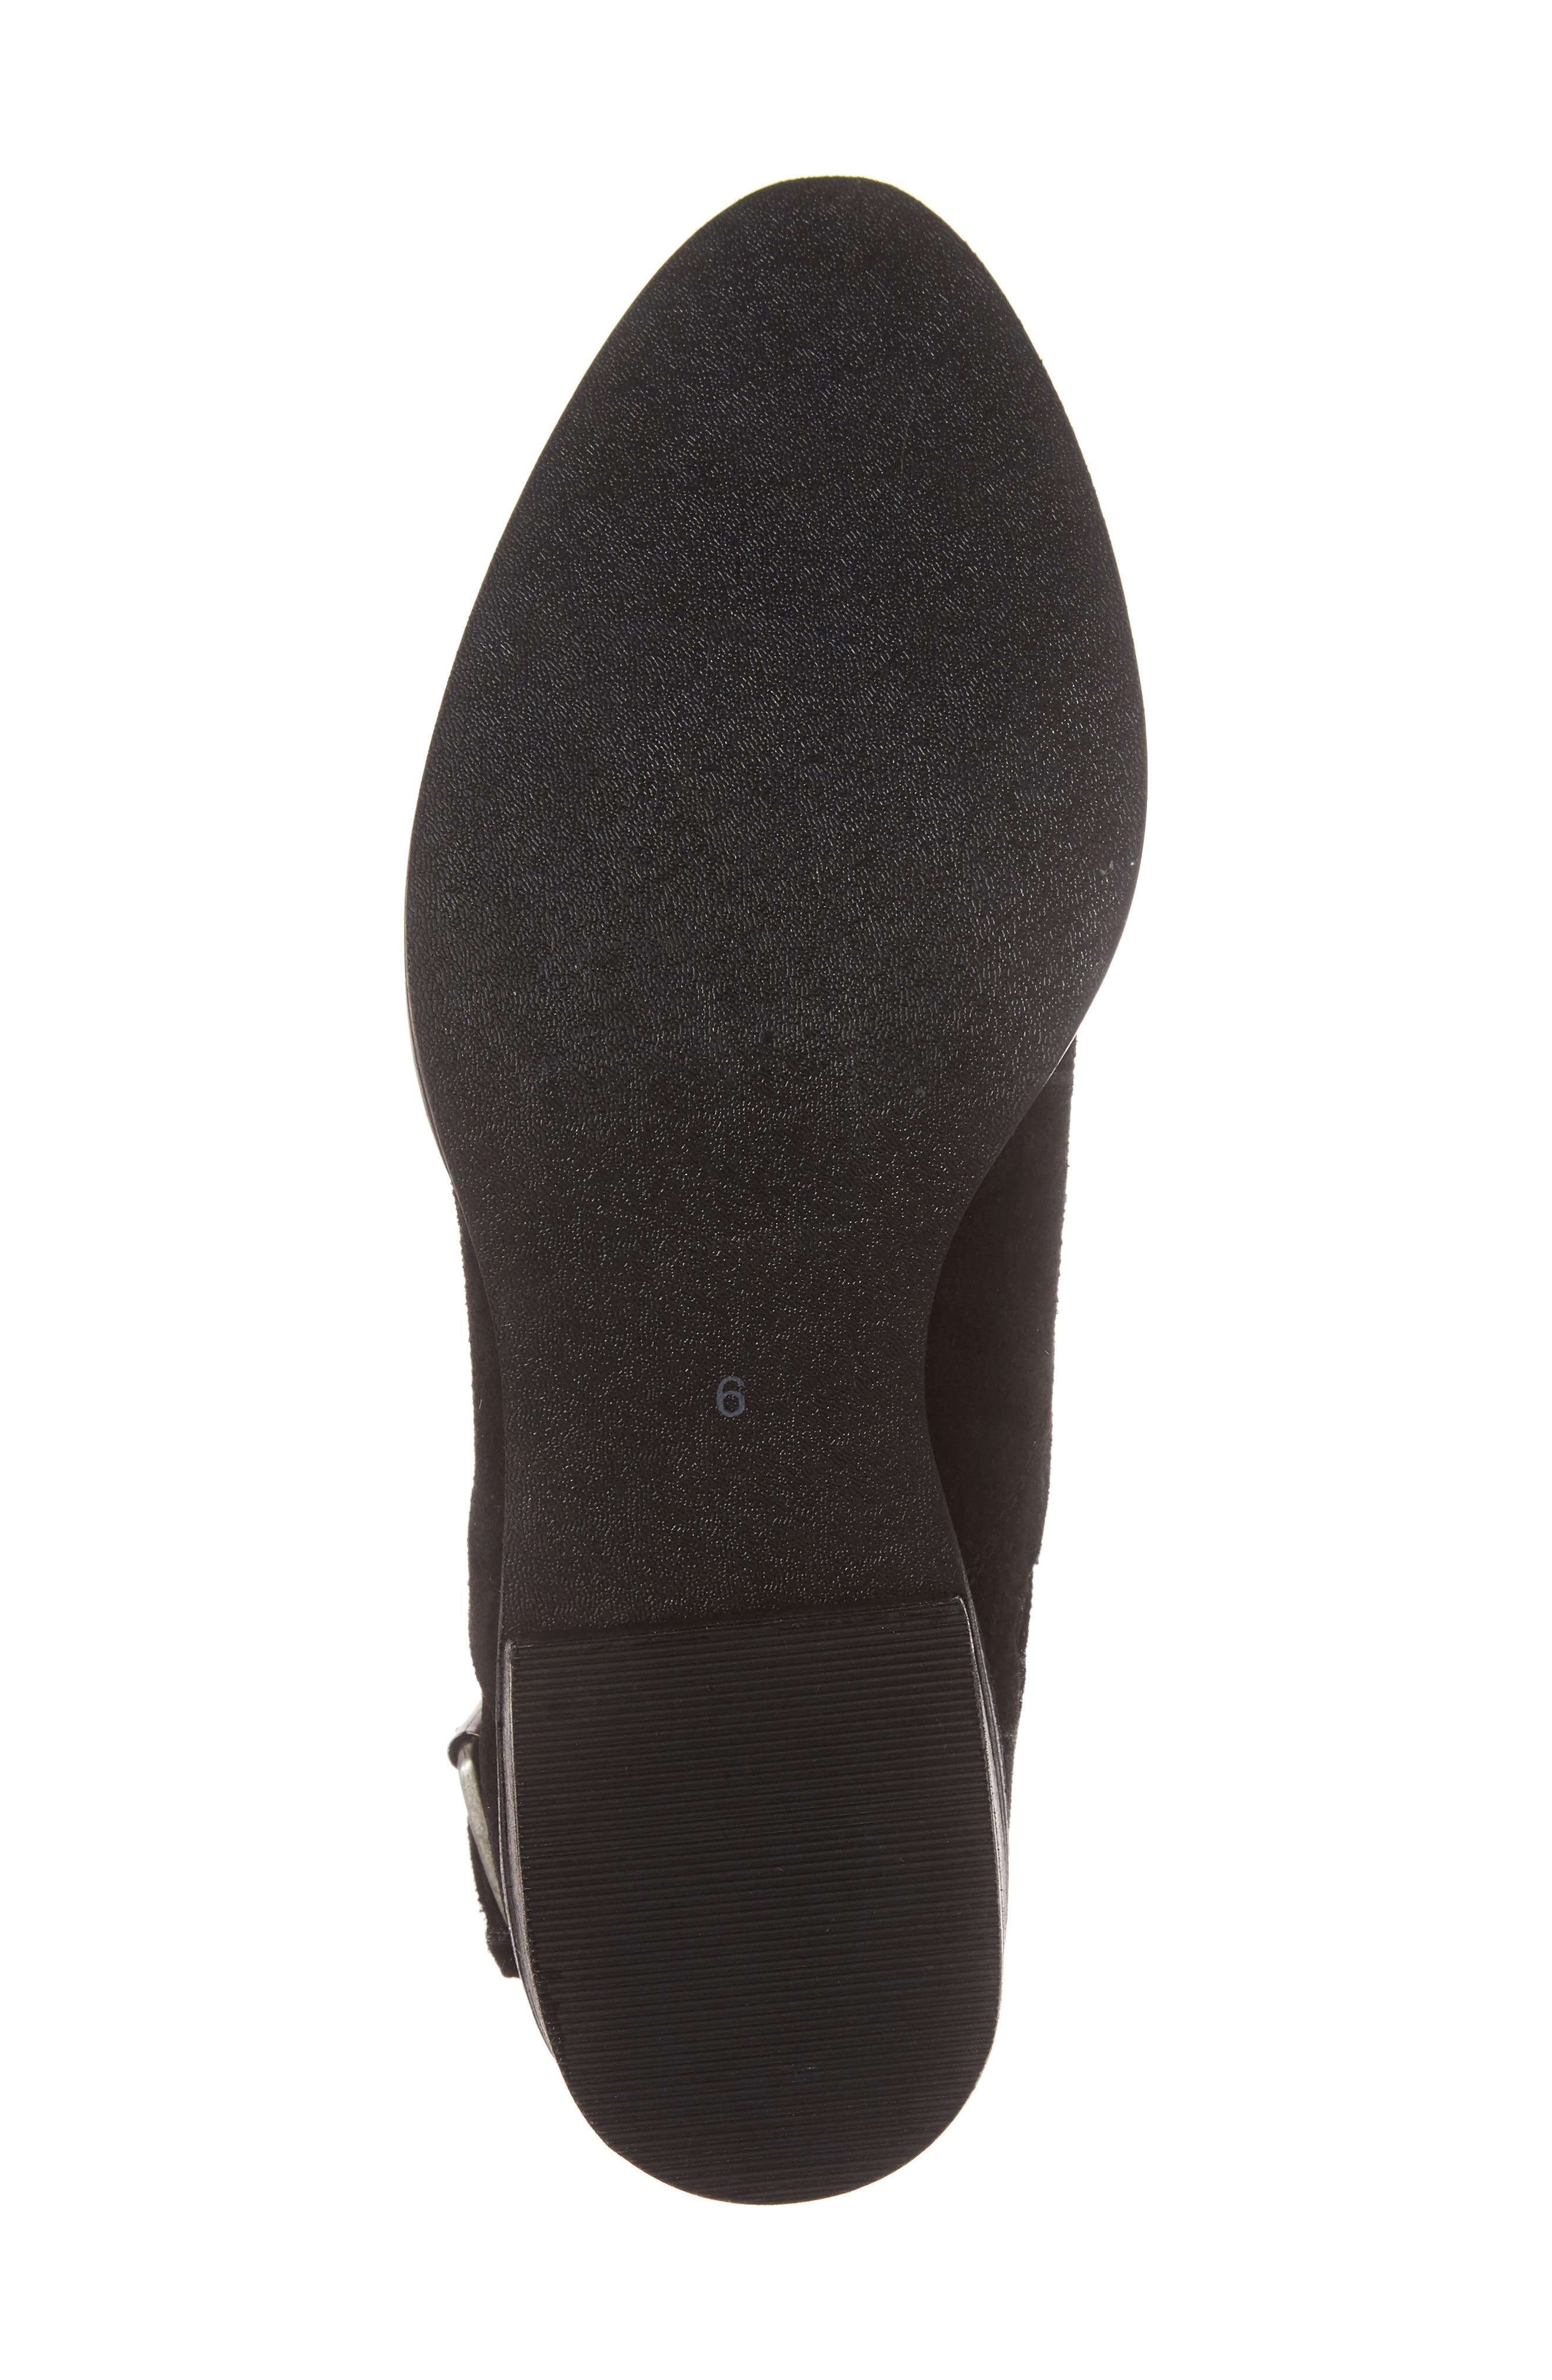 Zoey Perforated Bootie,                             Alternate thumbnail 6, color,                             Black Suede